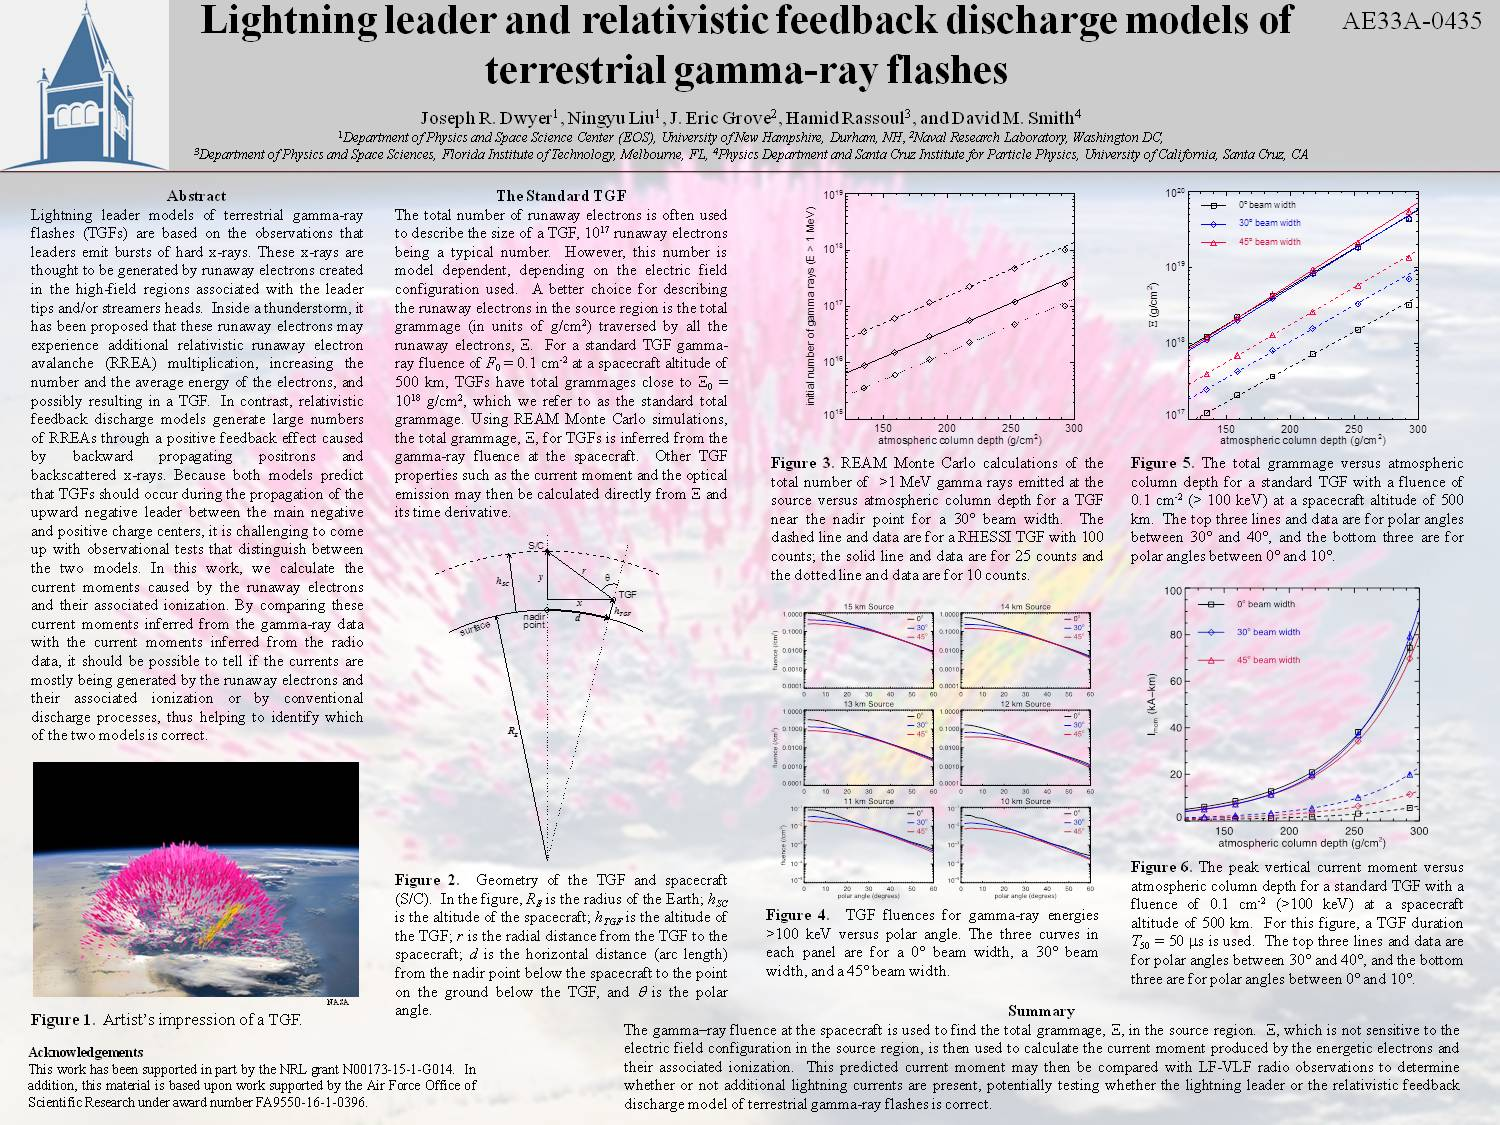 Lightning Leader And Relativistic Feedback Discharge Models Of Terrestrial Gamma-Ray Flashes by jrd1002